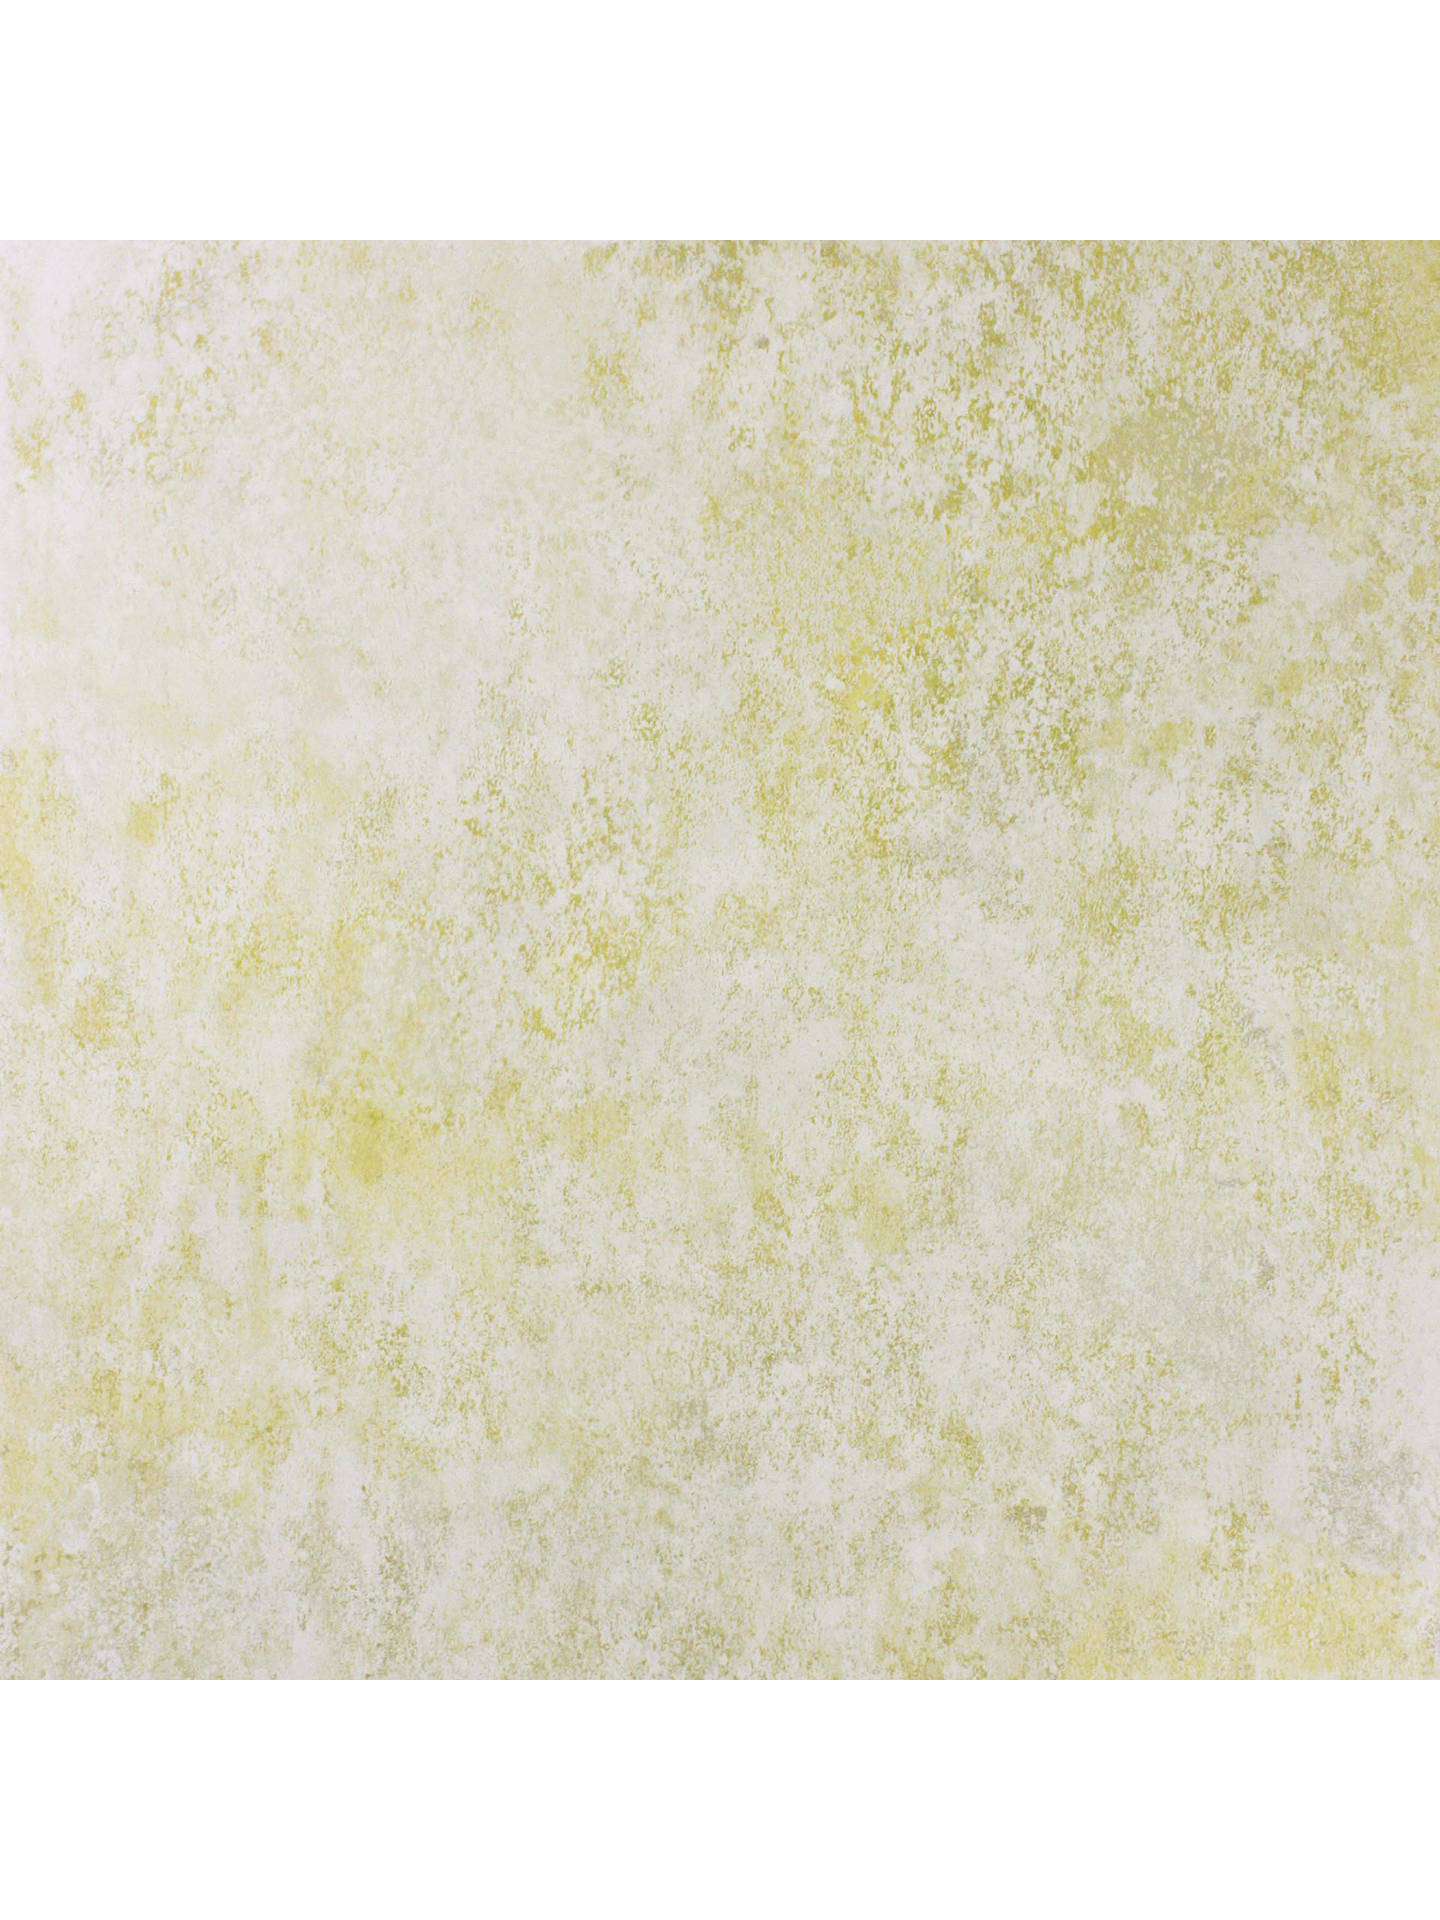 Buy Osborne & Little Fresco Wallpaper, W7023-03 Online at johnlewis.com